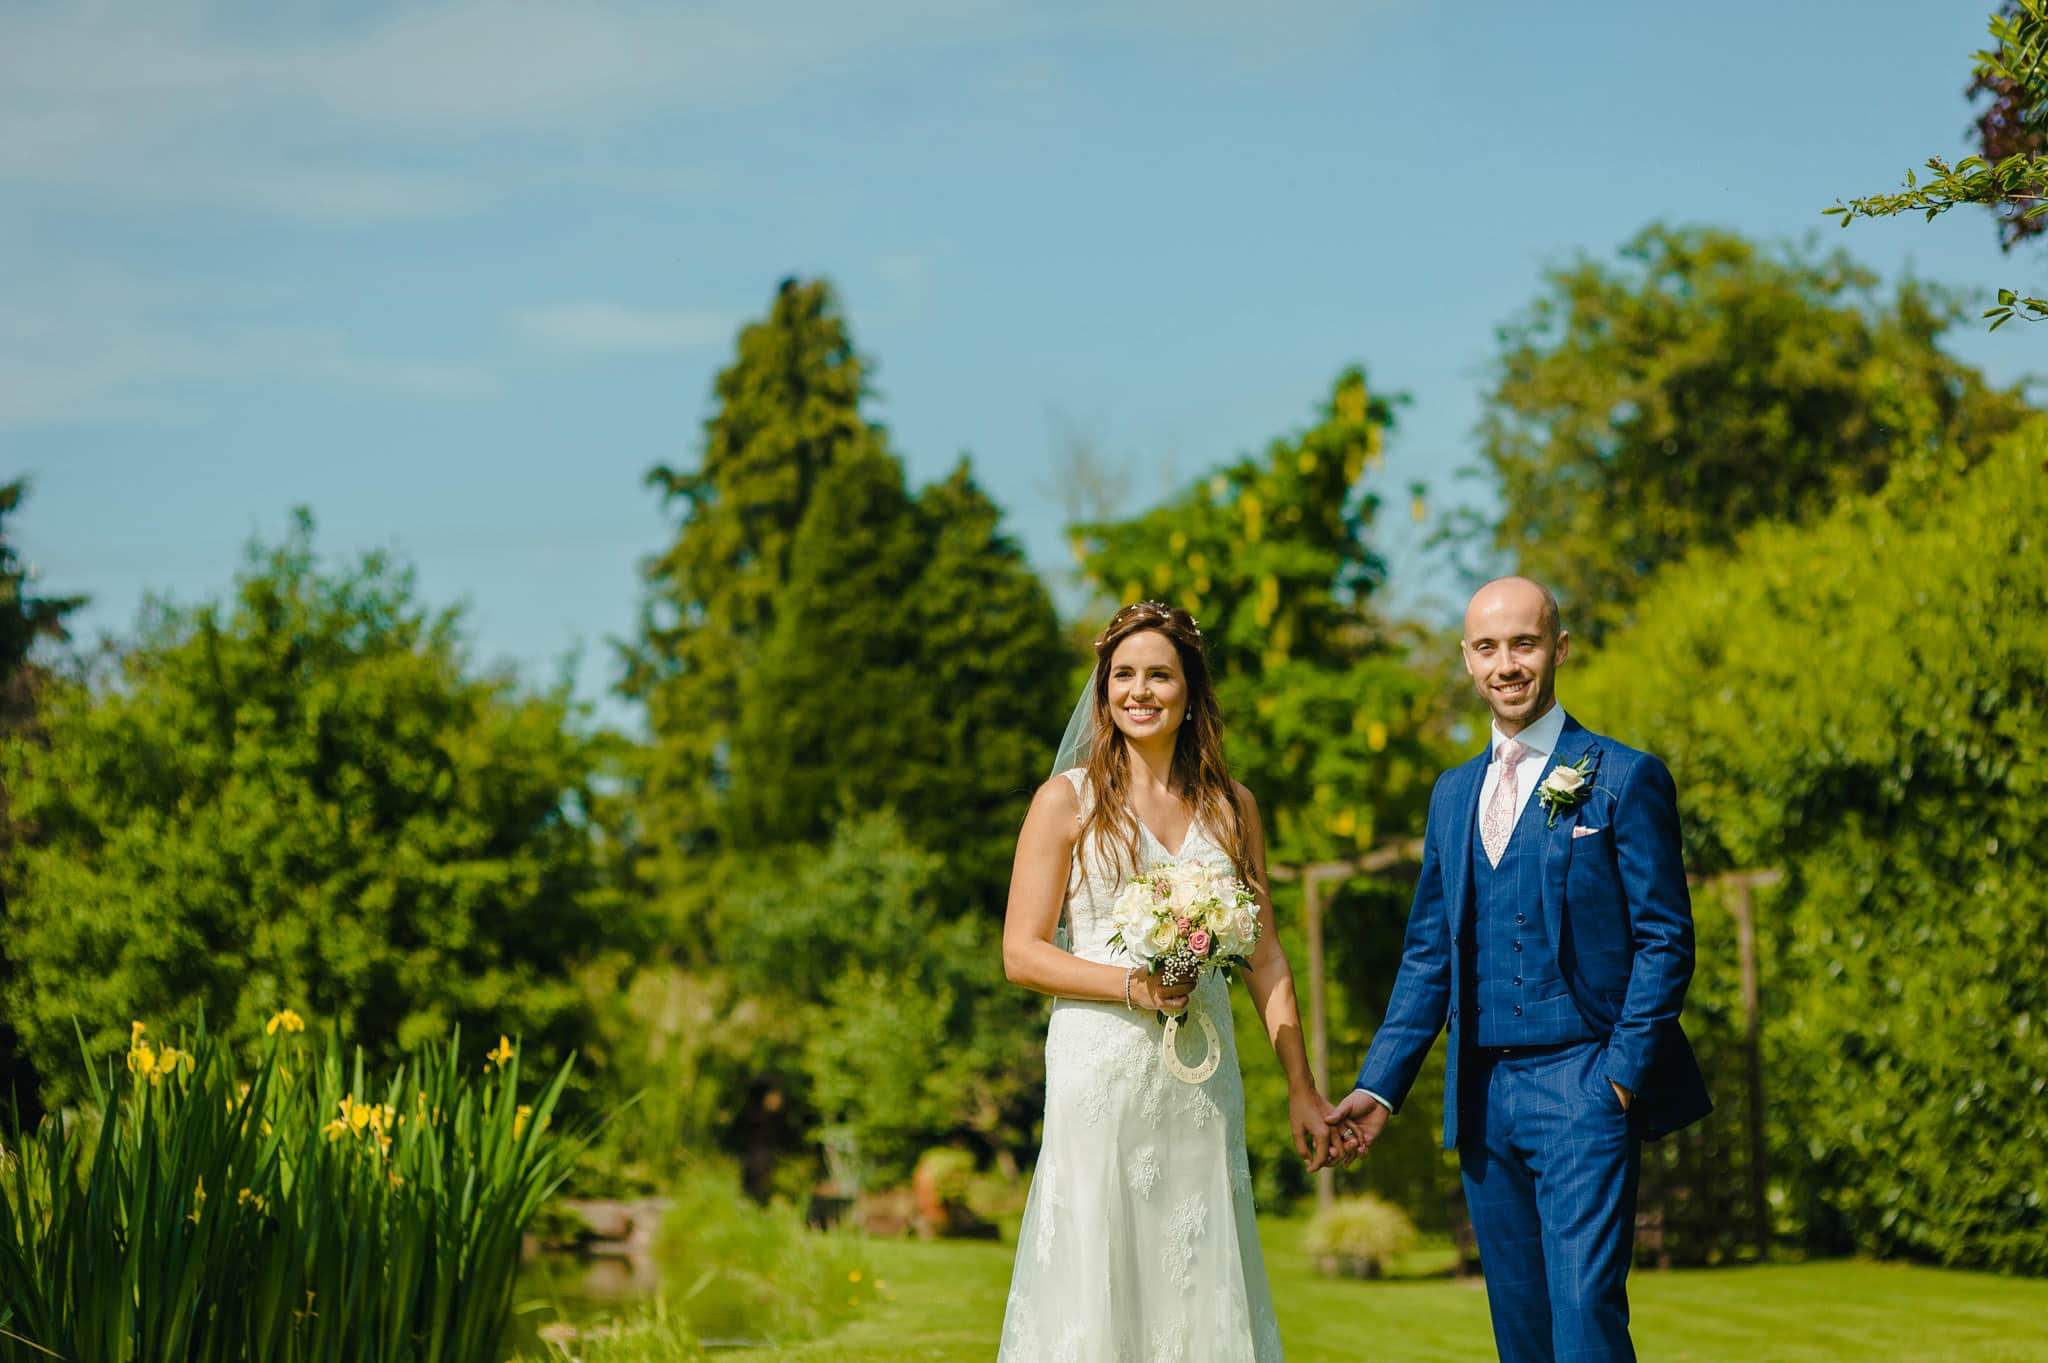 wedding at redhouse barn 125 - Wedding at Redhouse Barn in Stoke Prior, Worcestershire